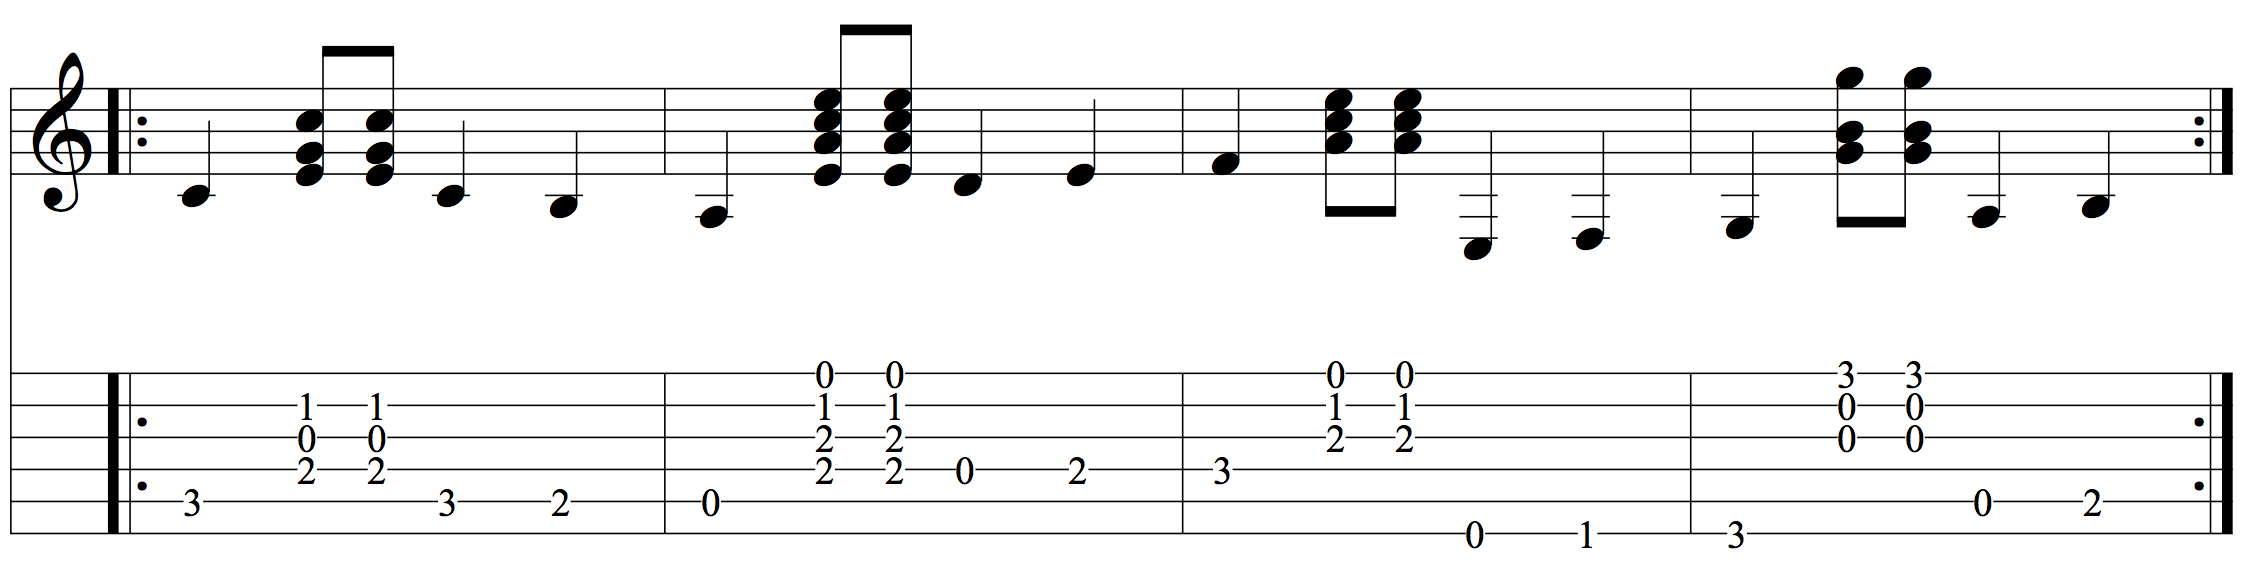 Building pick-hand accuracy with by adding melodic bass sequences to connect chords.